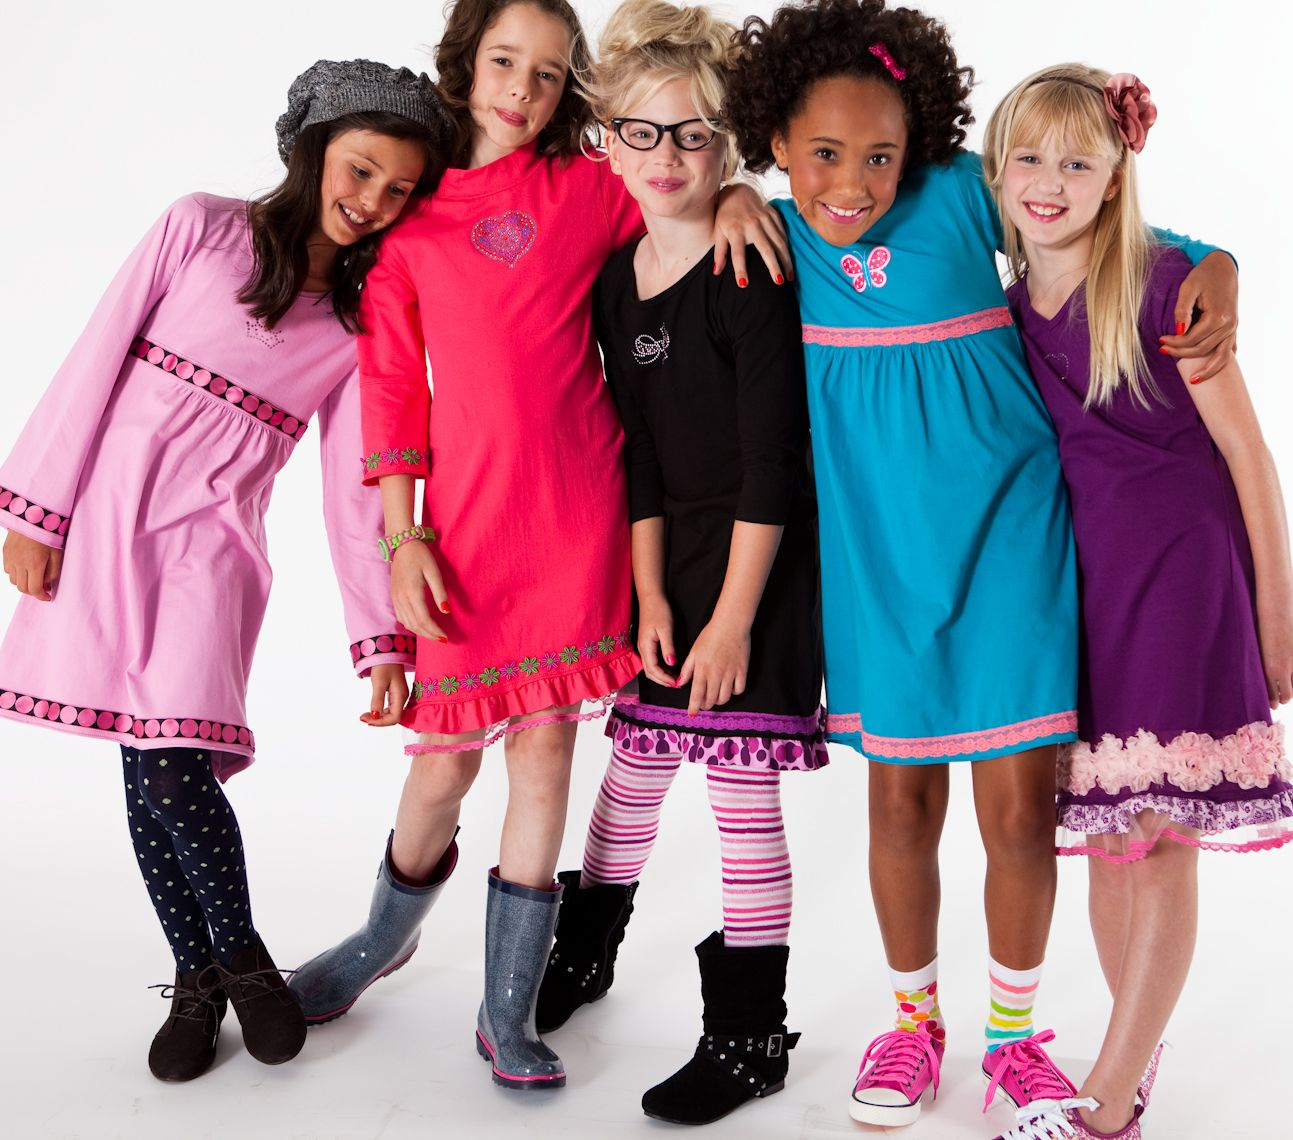 Find the cutest selection of girls' clothing at Buckle. Shop jeans, shorts, tees, shoes, & more in your favorite brands.